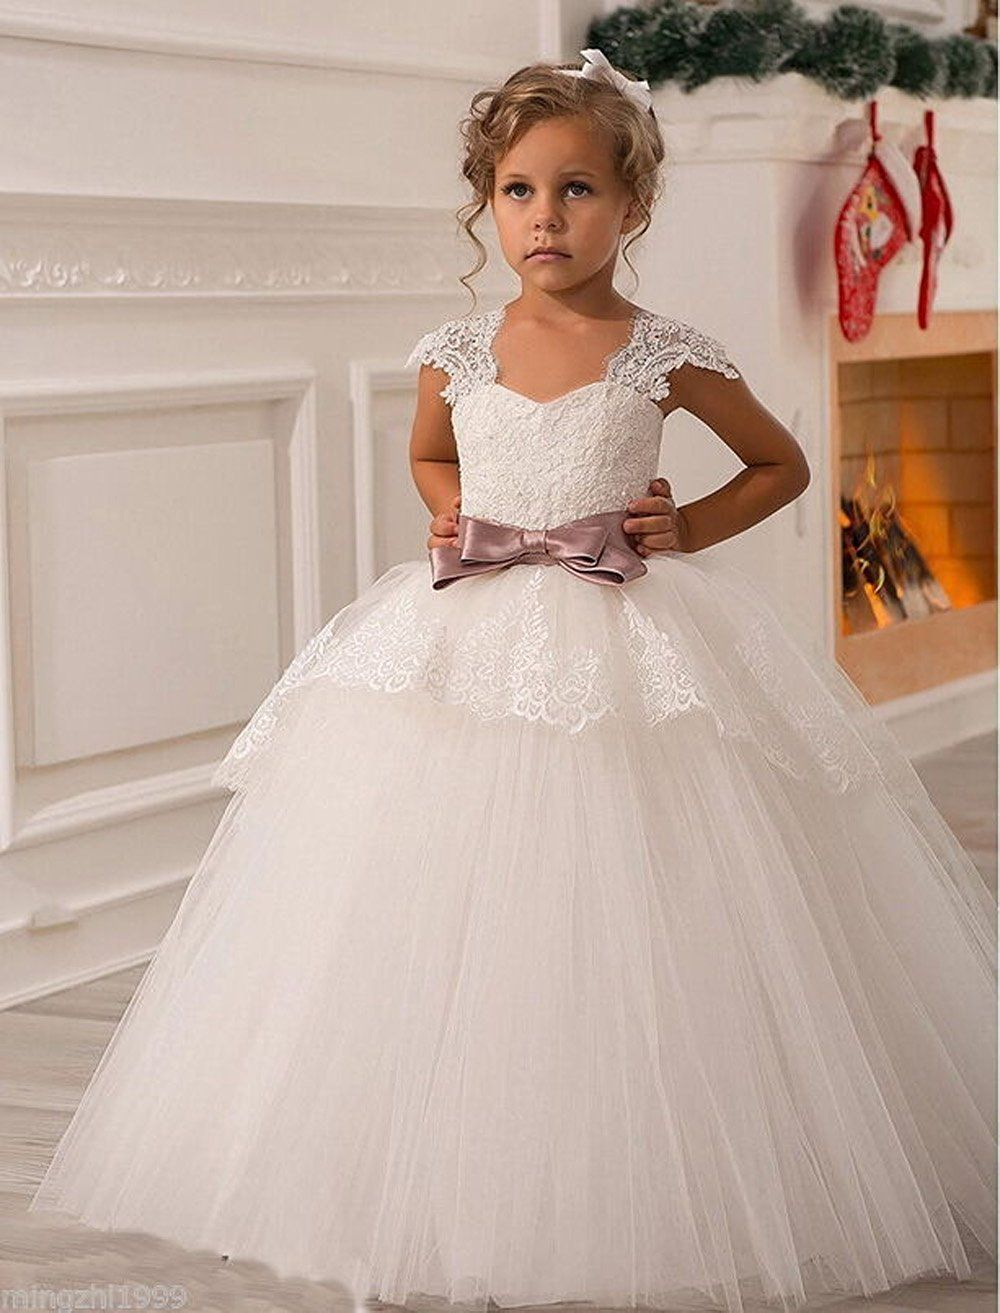 Amazon.com: HTYS Baby Princess Bridesmaid Flower Girls Dresses Wedding Prom Gown HY065: Clothing